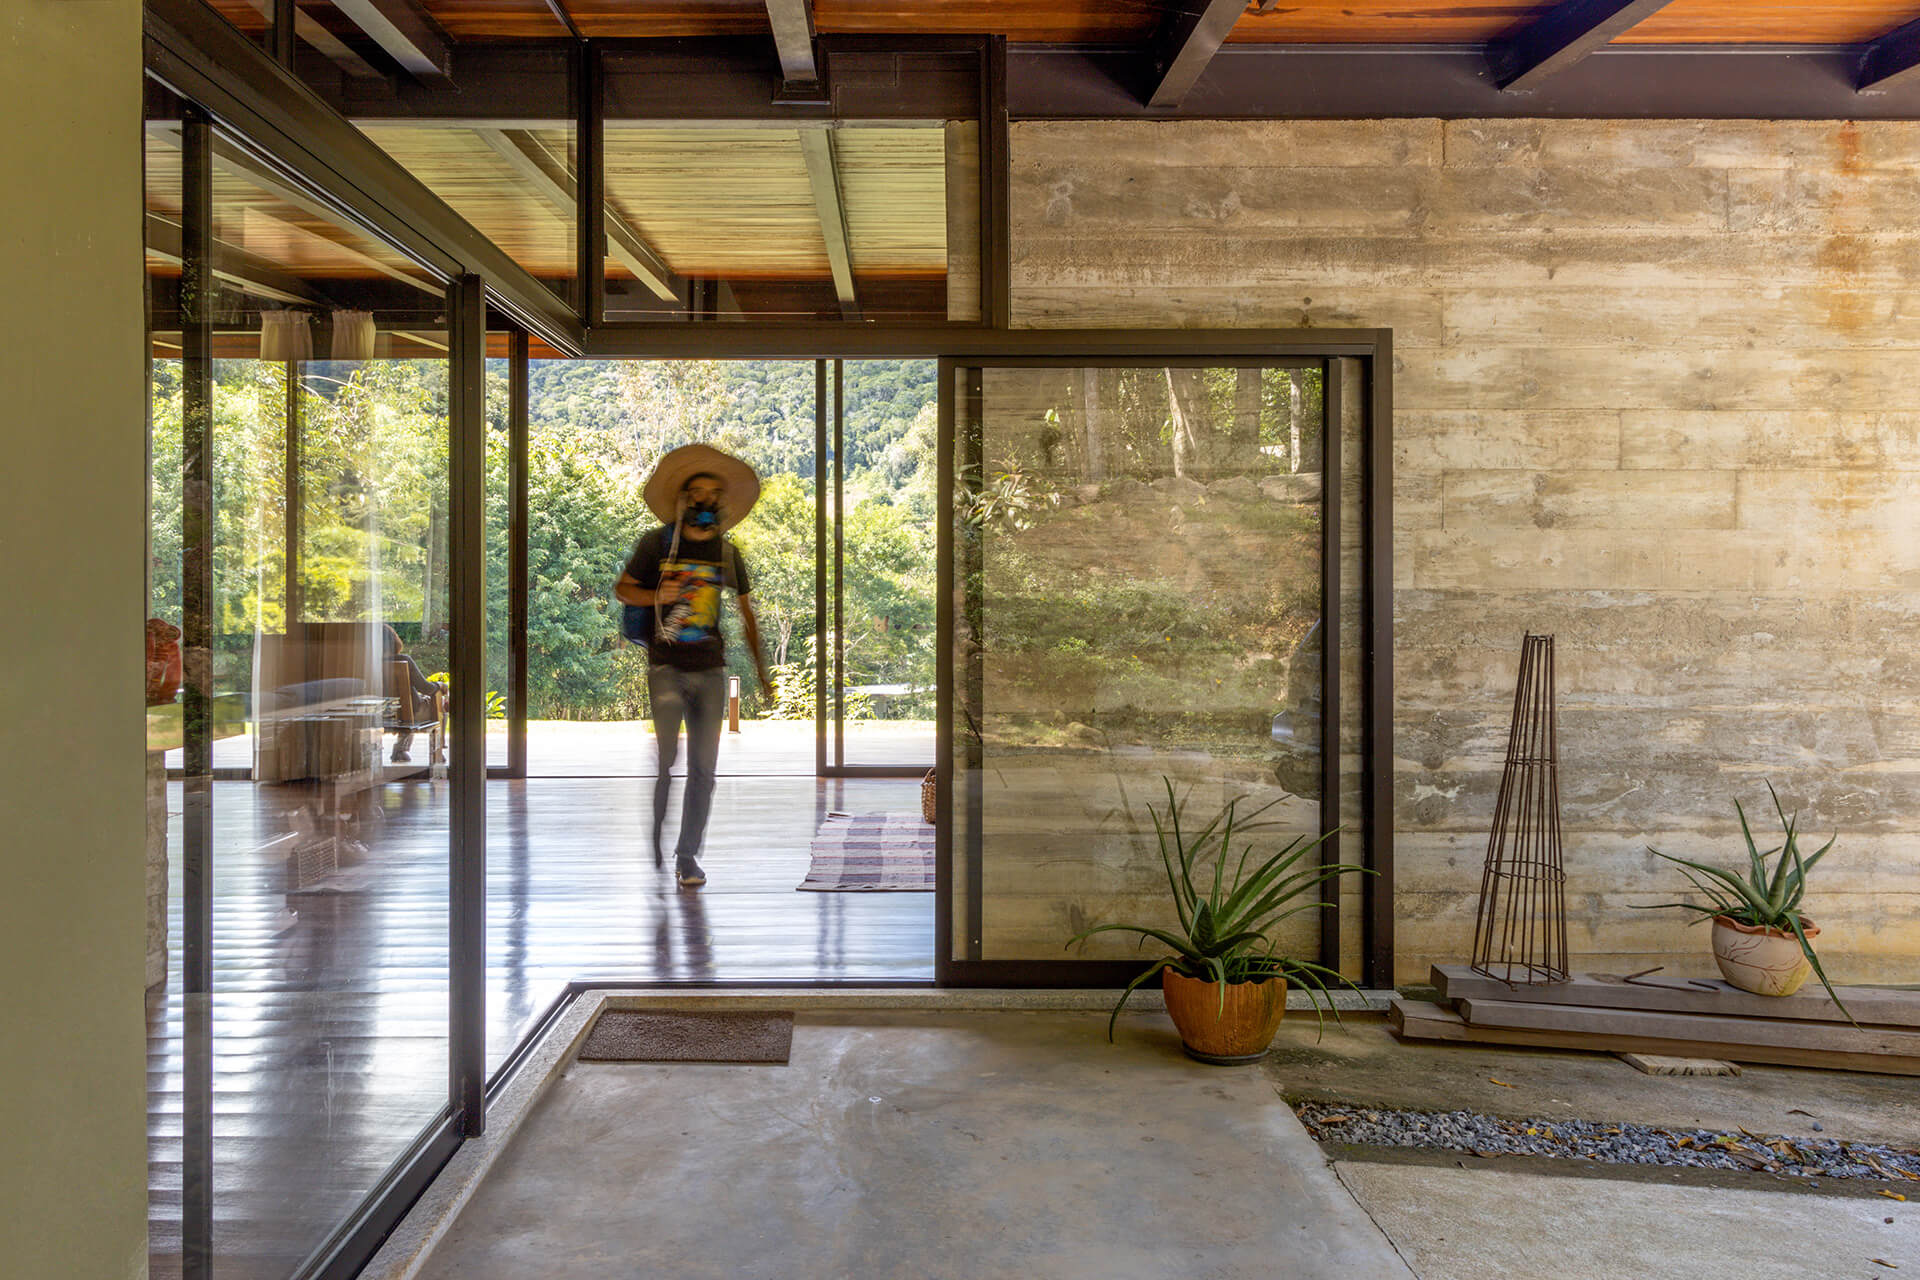 Aluminium-framed glass panels create a clear visual connection between the indoors and outdoors | House in Vale das Videiras by Rodrigo Simão Arquitetura | STIRworld